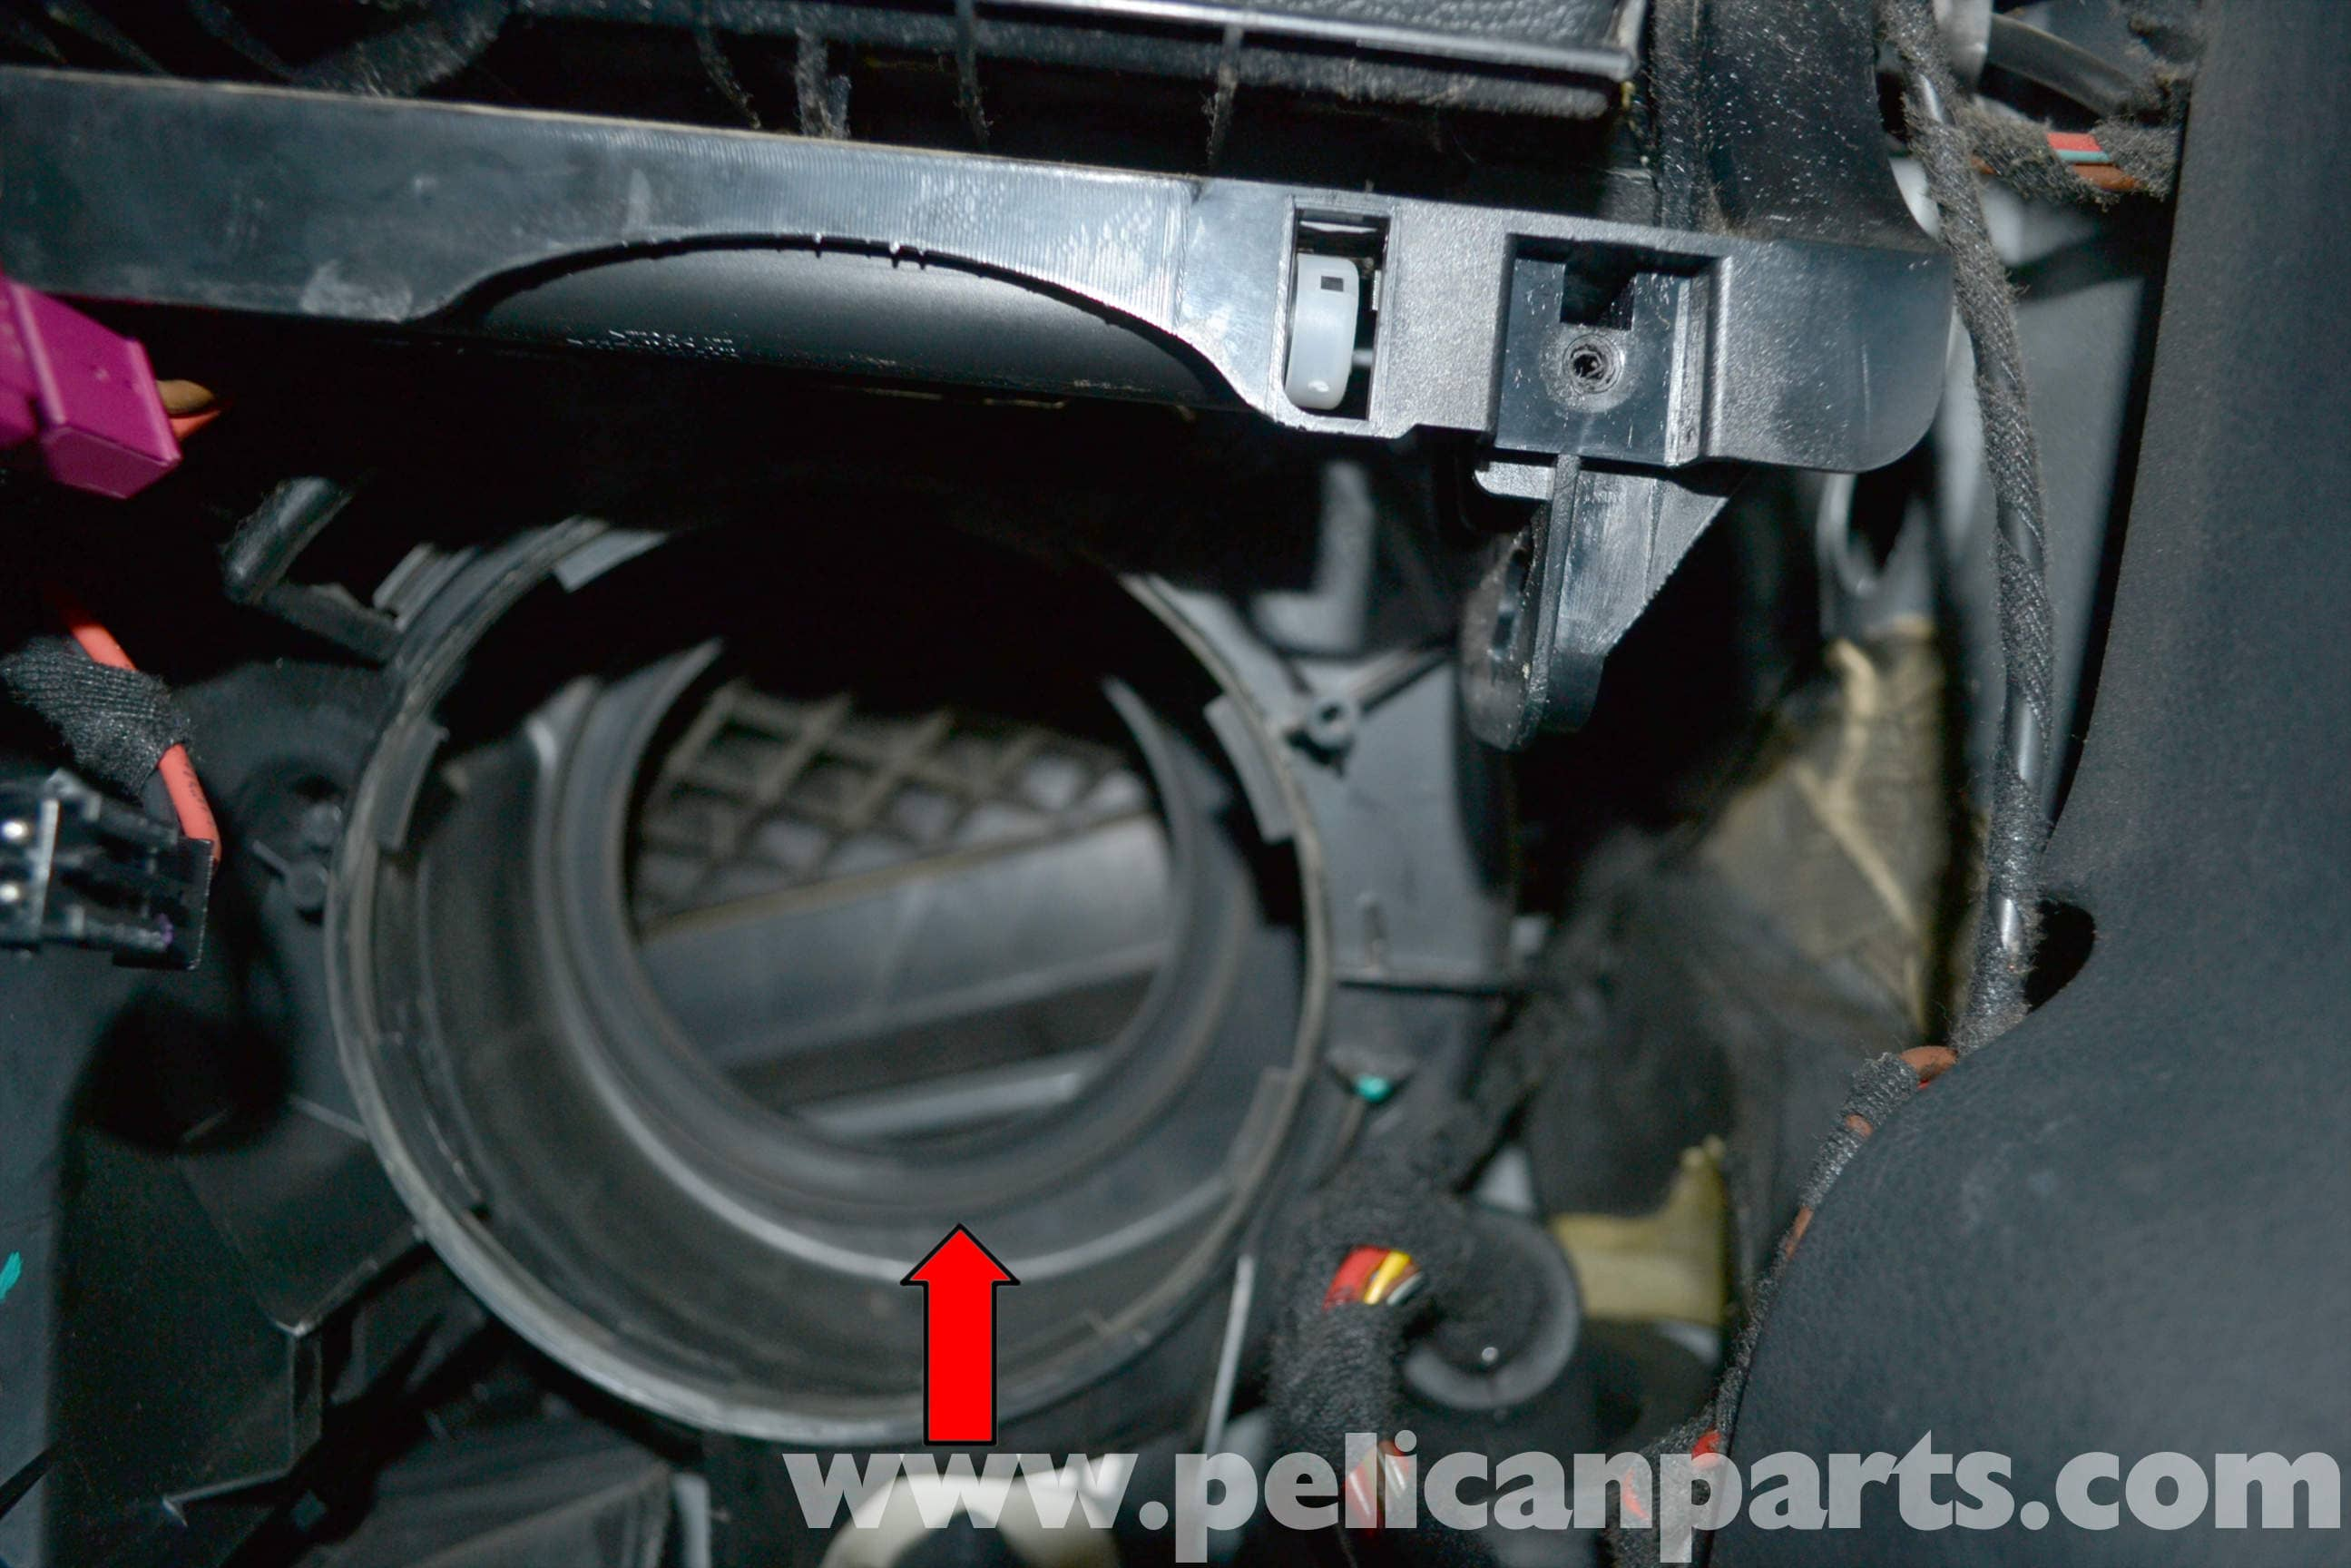 Mercedes-benz W204 Blower Motor Replacement